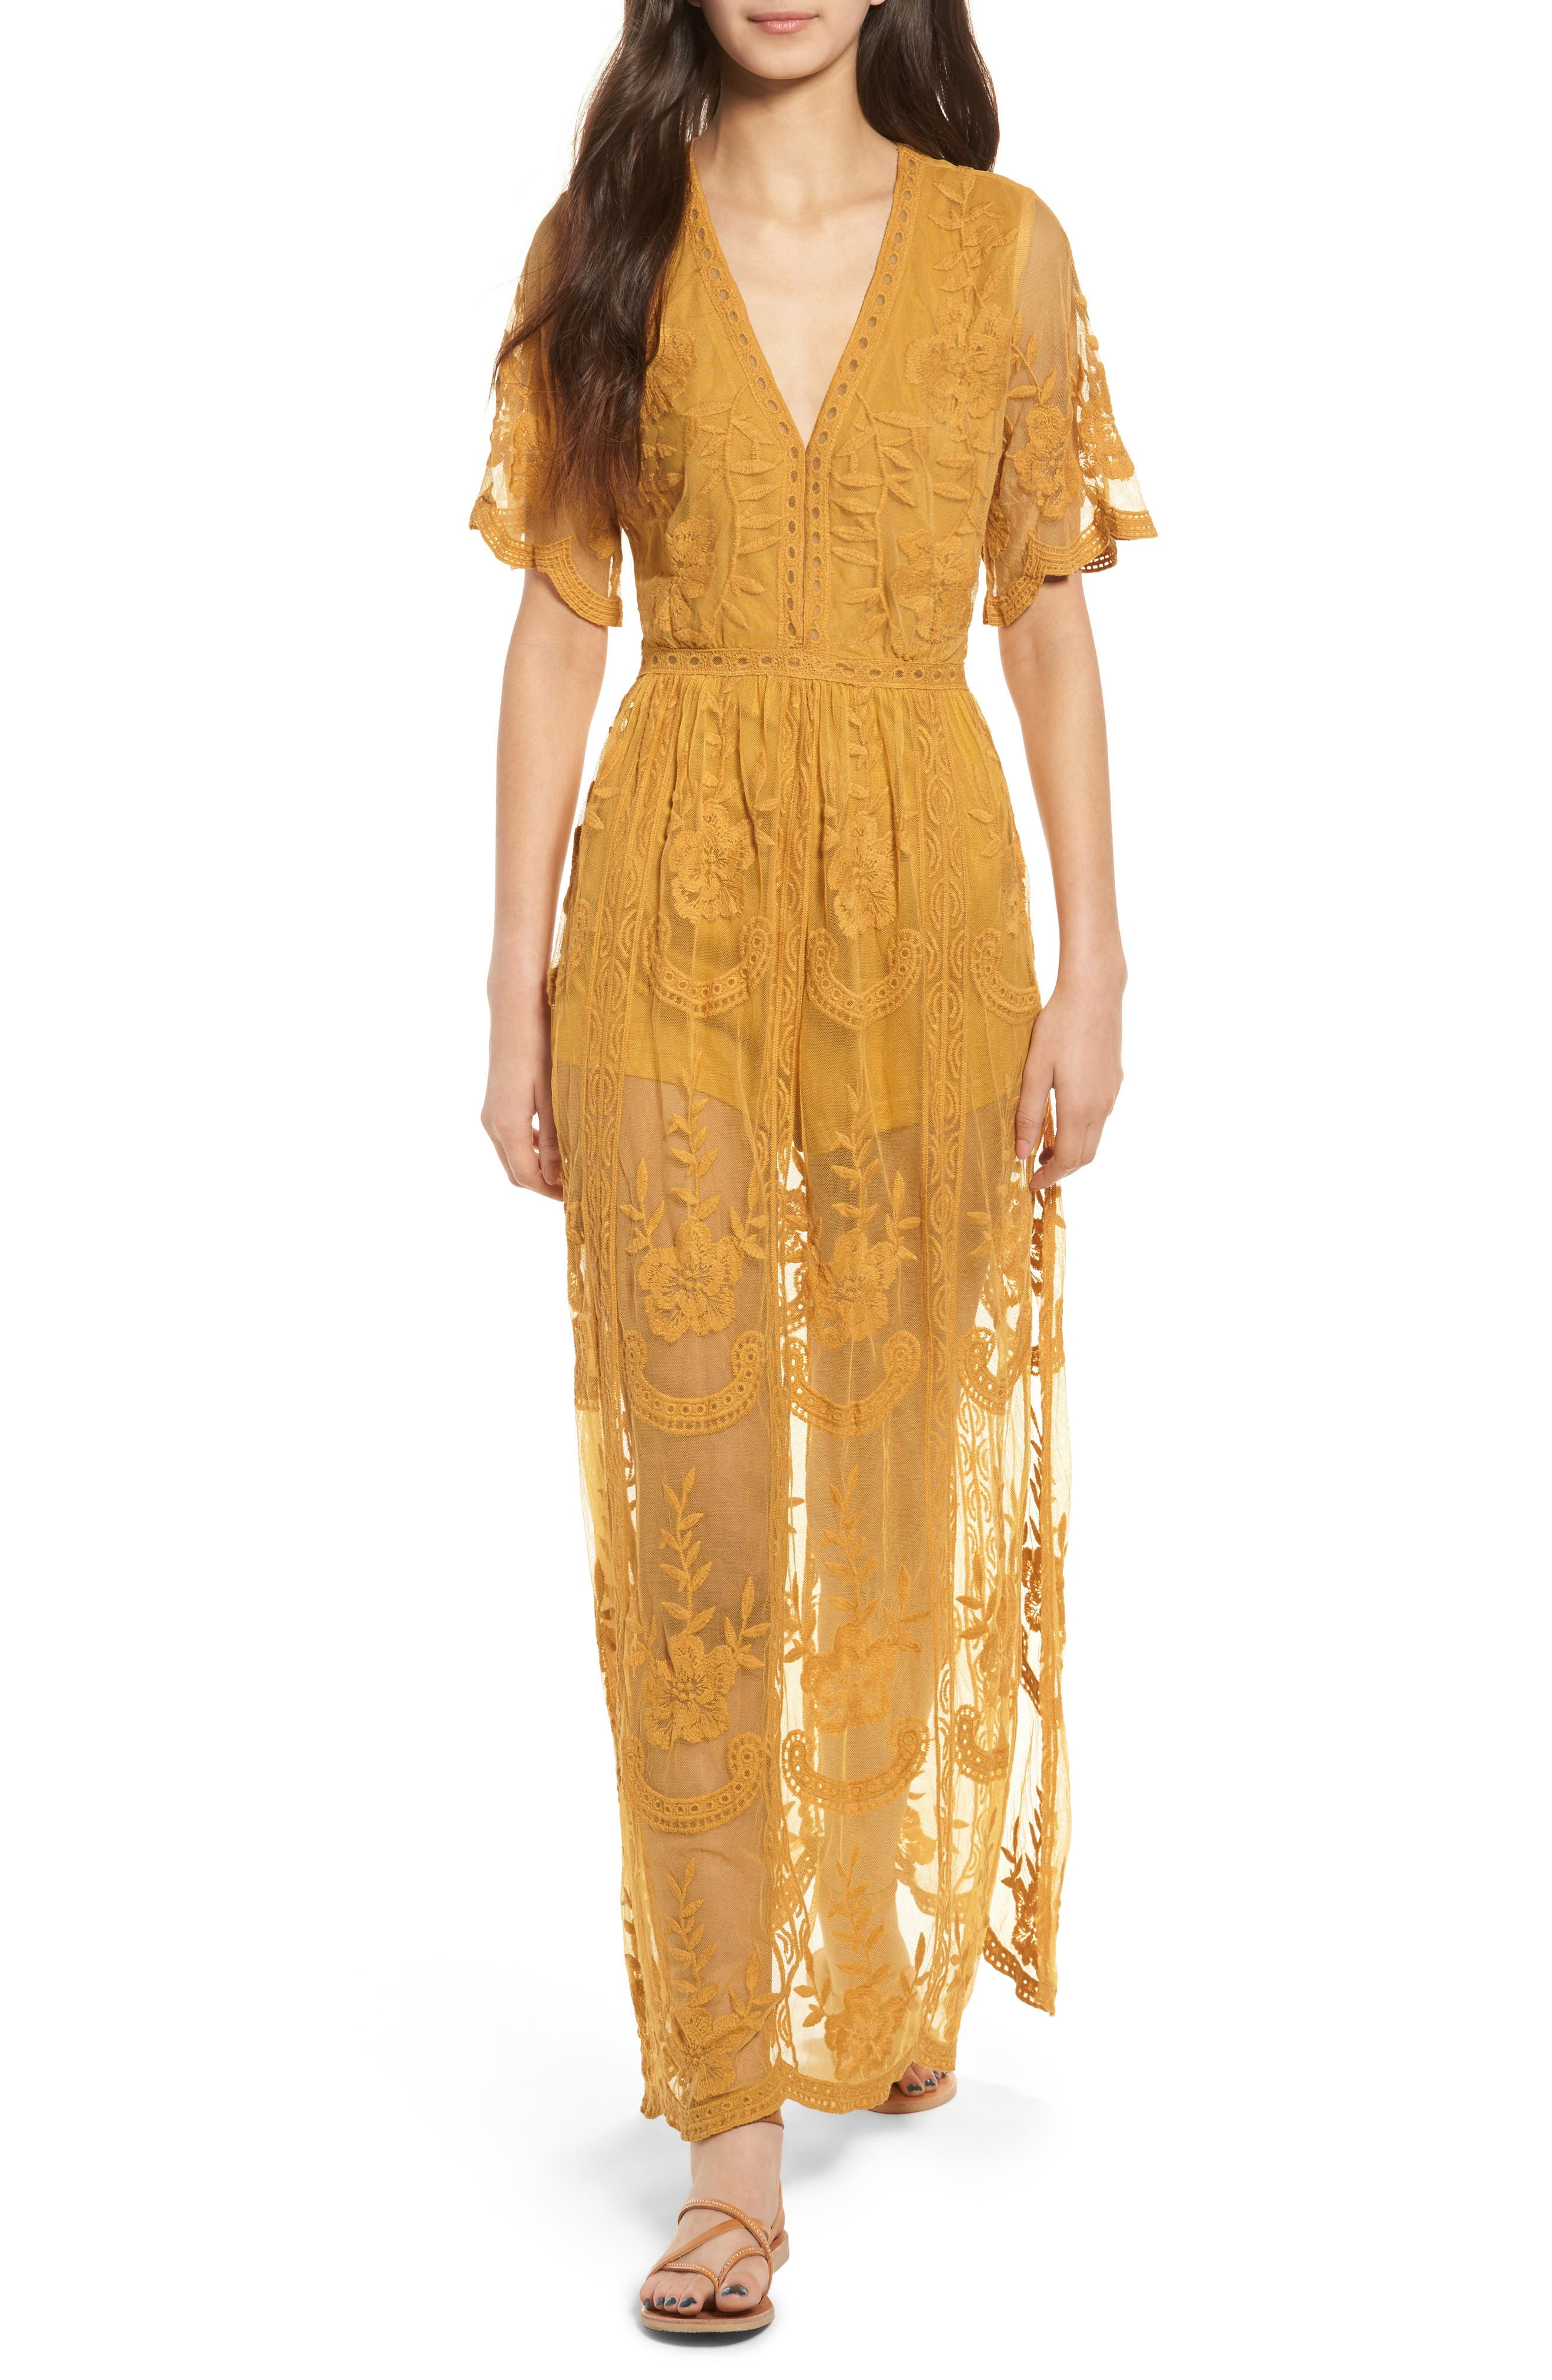 Yellow lace rompers and dresses